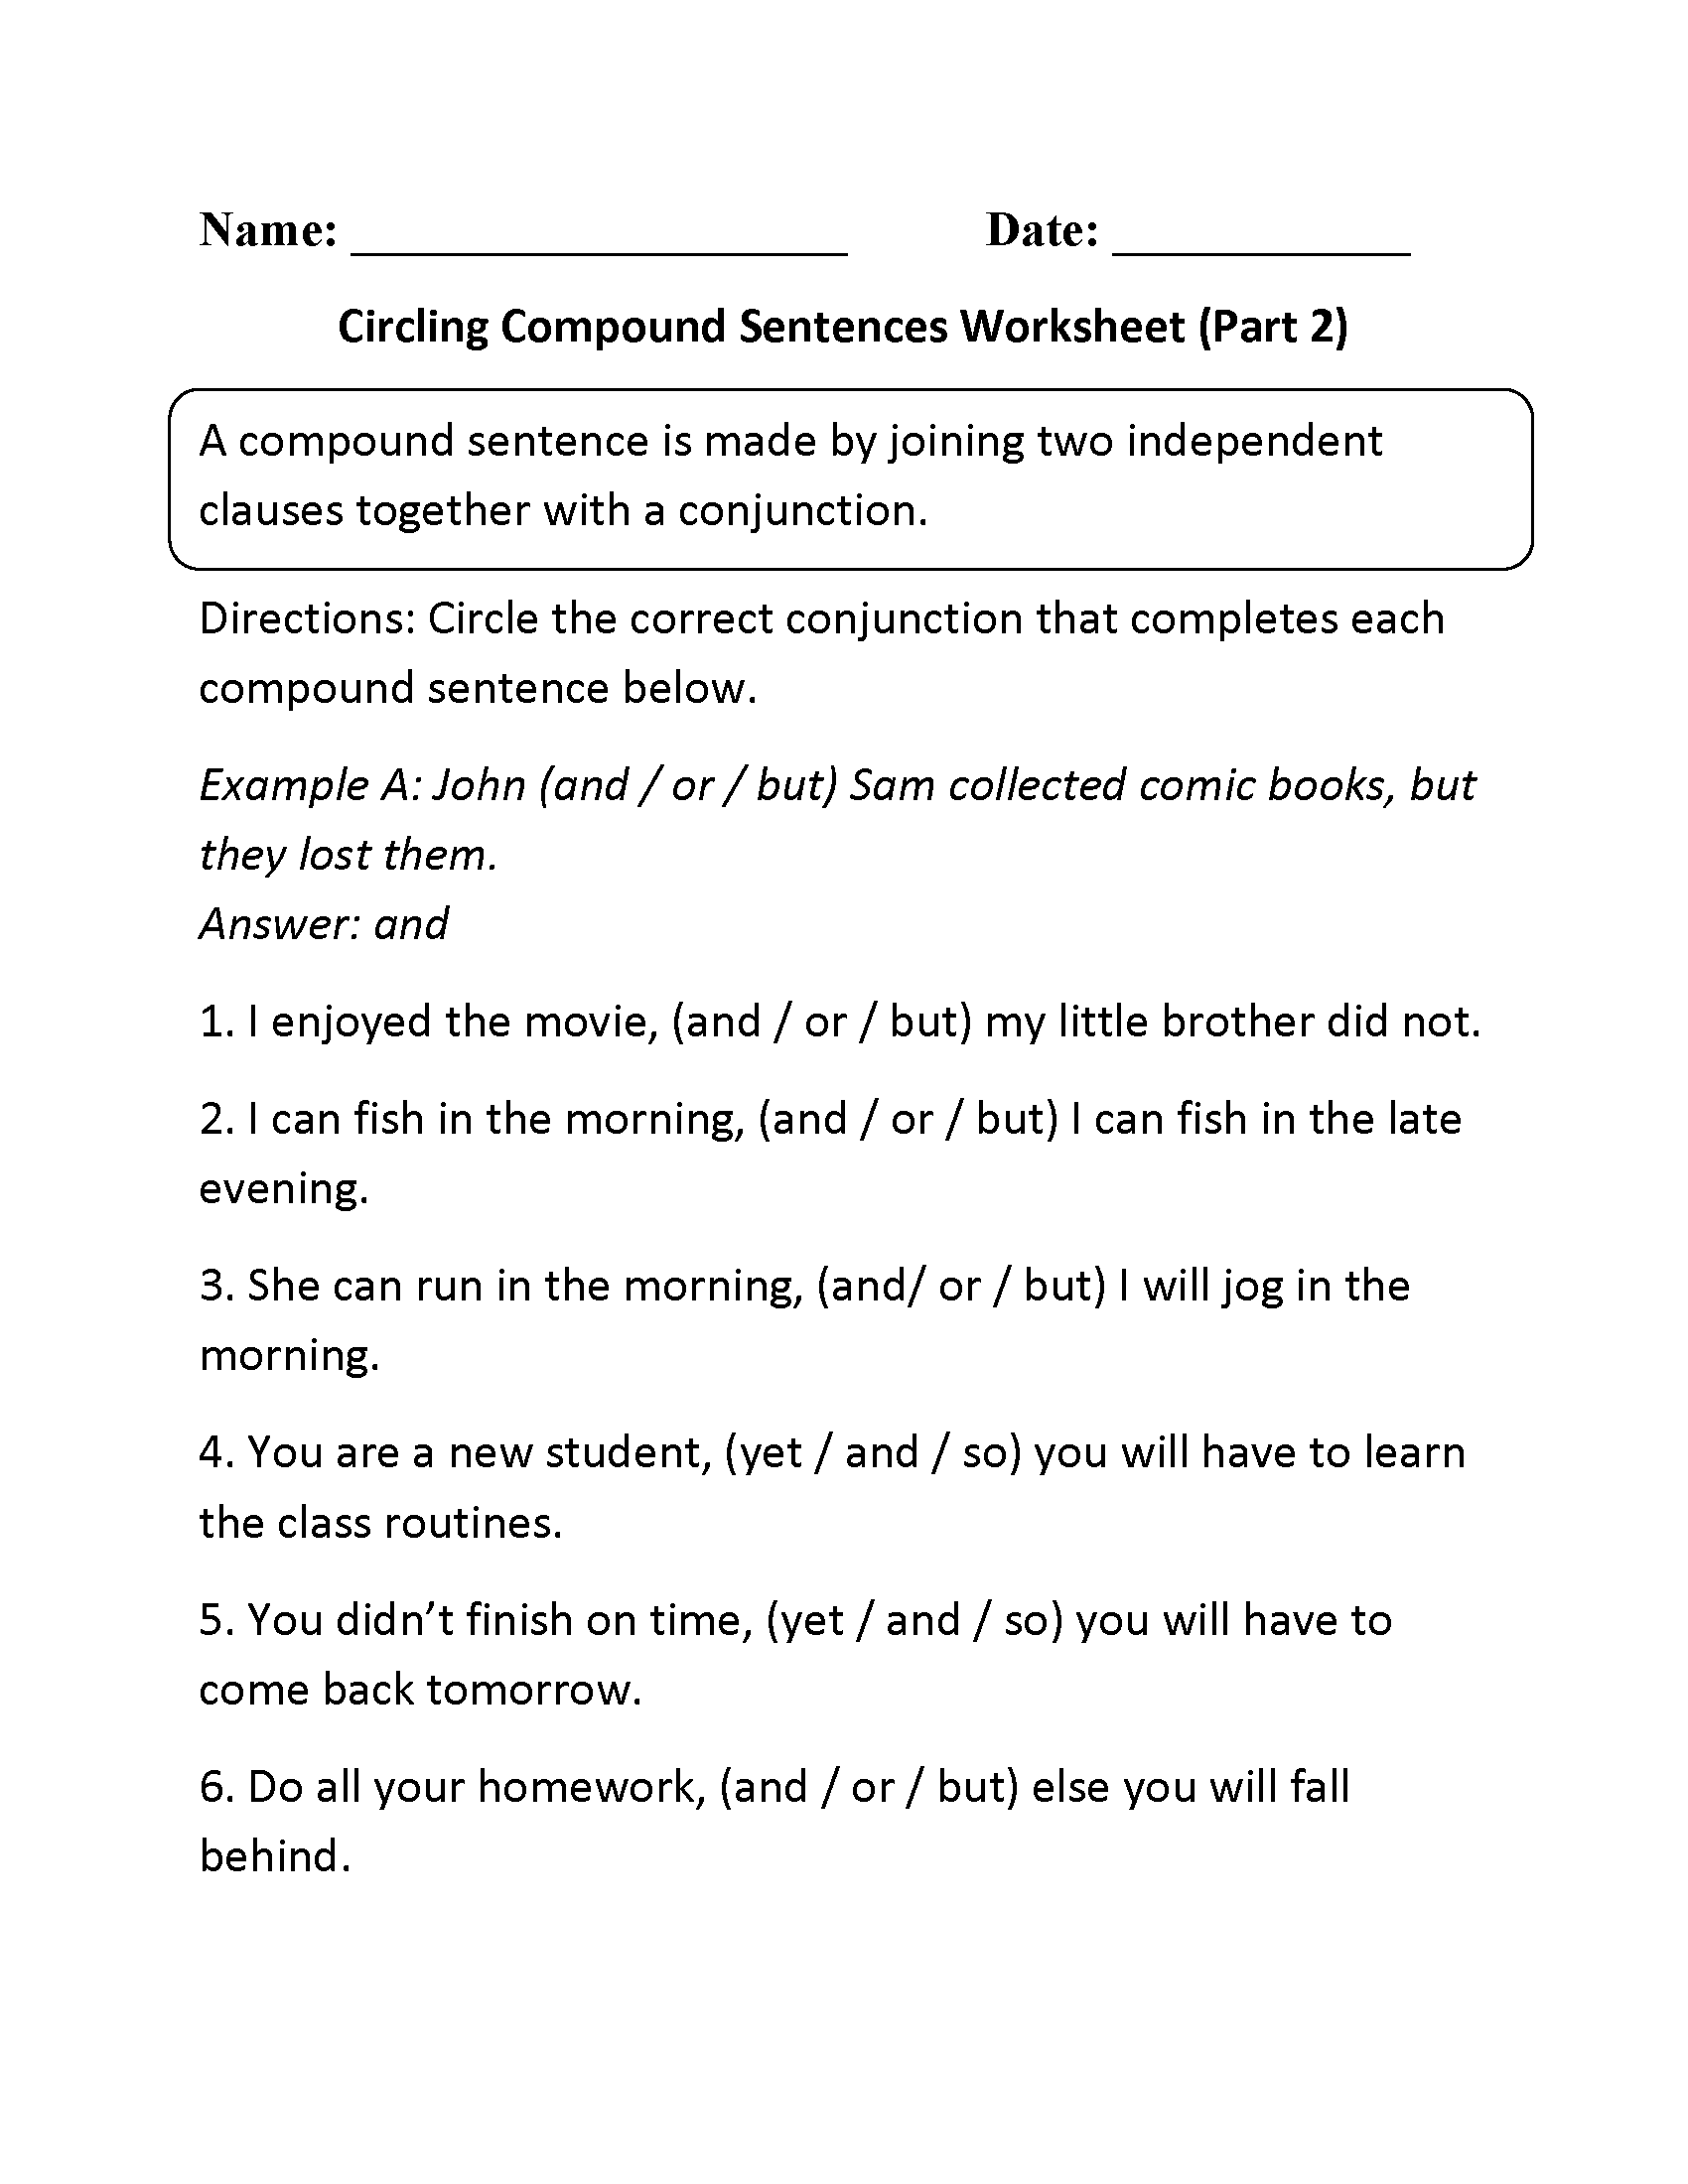 Circling Compound Sentences Worksheet Part 2 School Ideas For